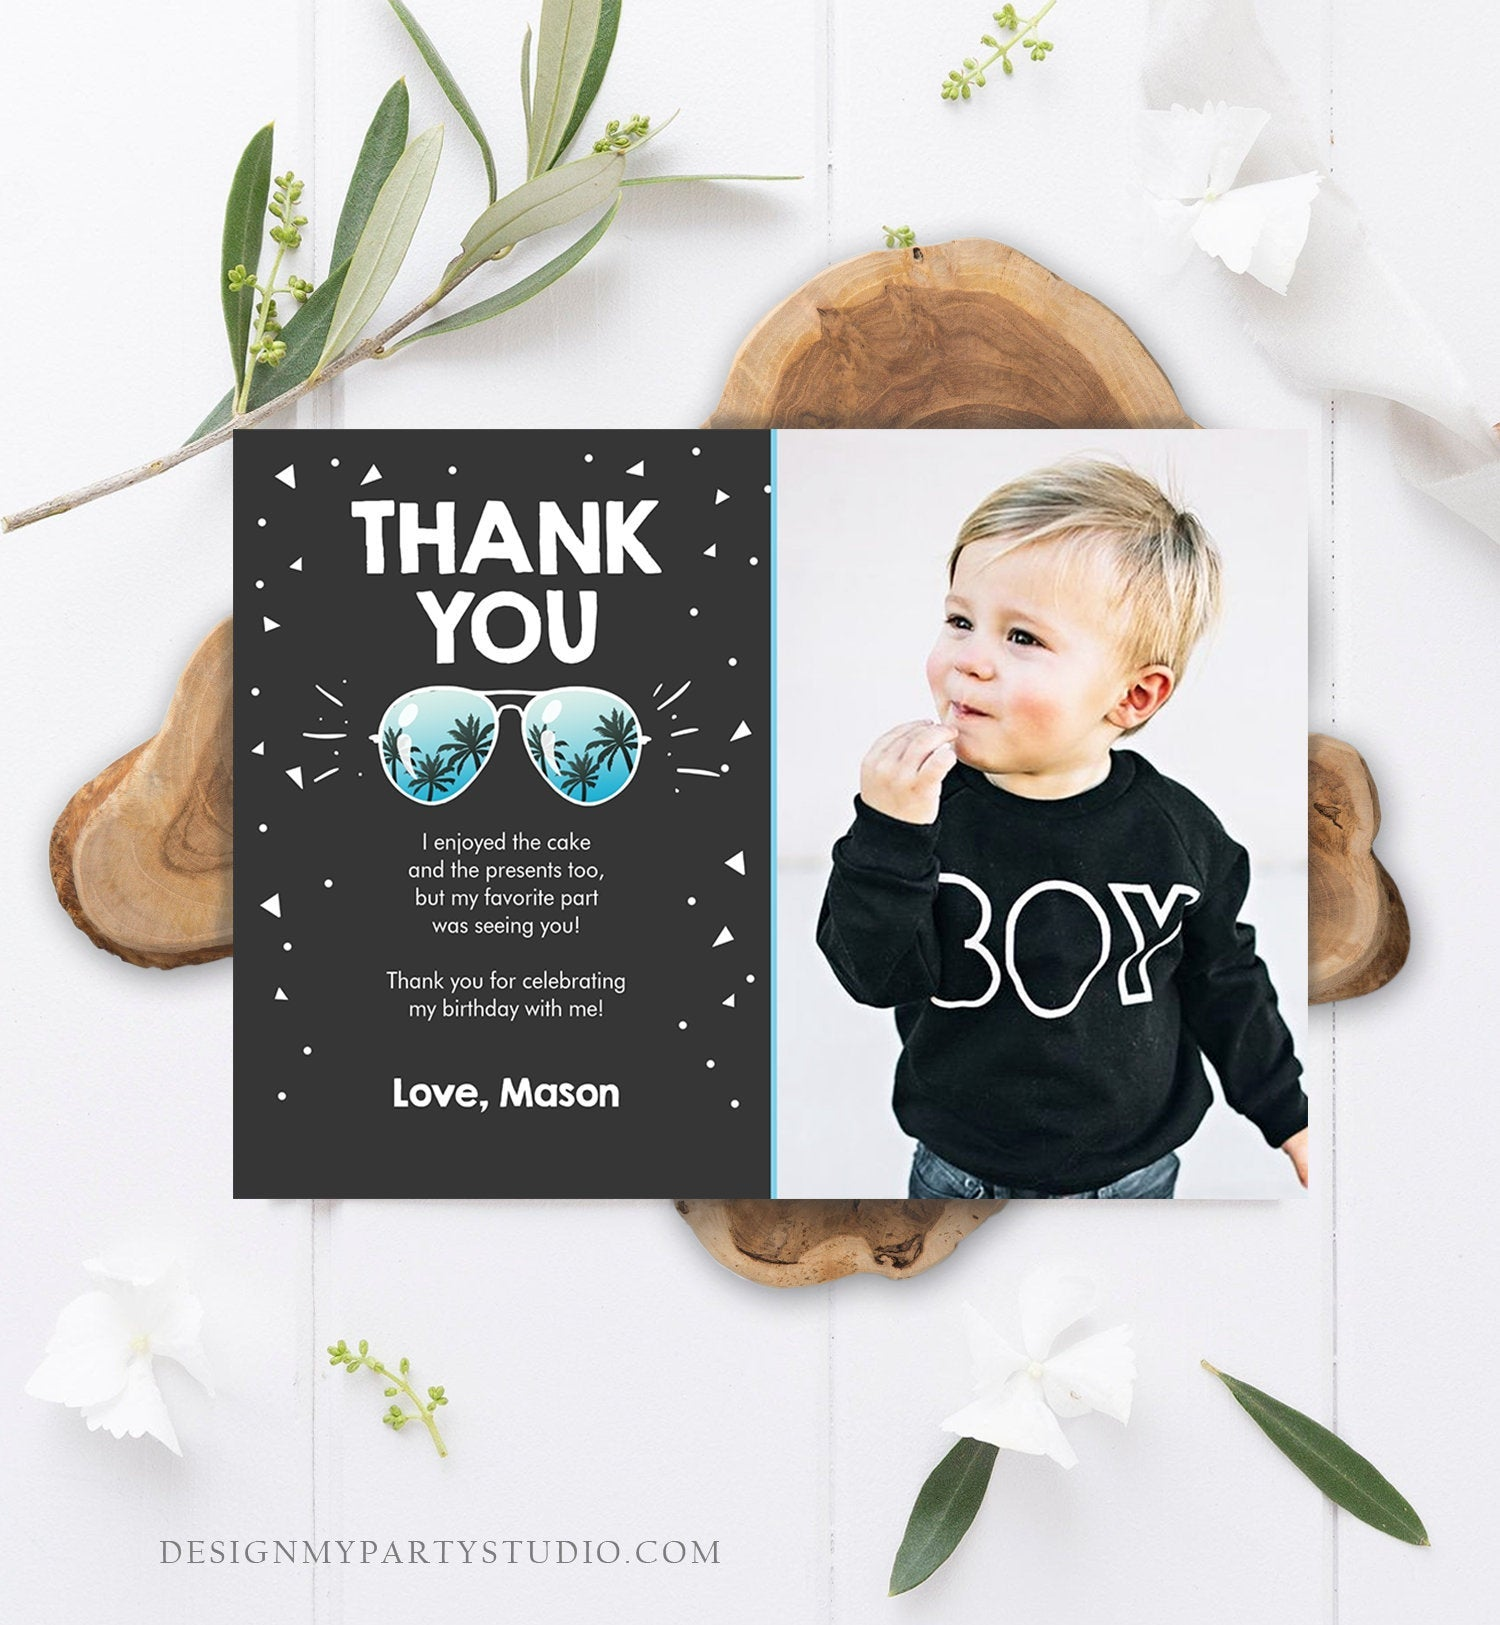 Editable Thank You Card Two Cool Birthday Boy Sunglasses Palm Second Birthday Party Note 2nd Chalk Photo Corjl Template Printable 0136